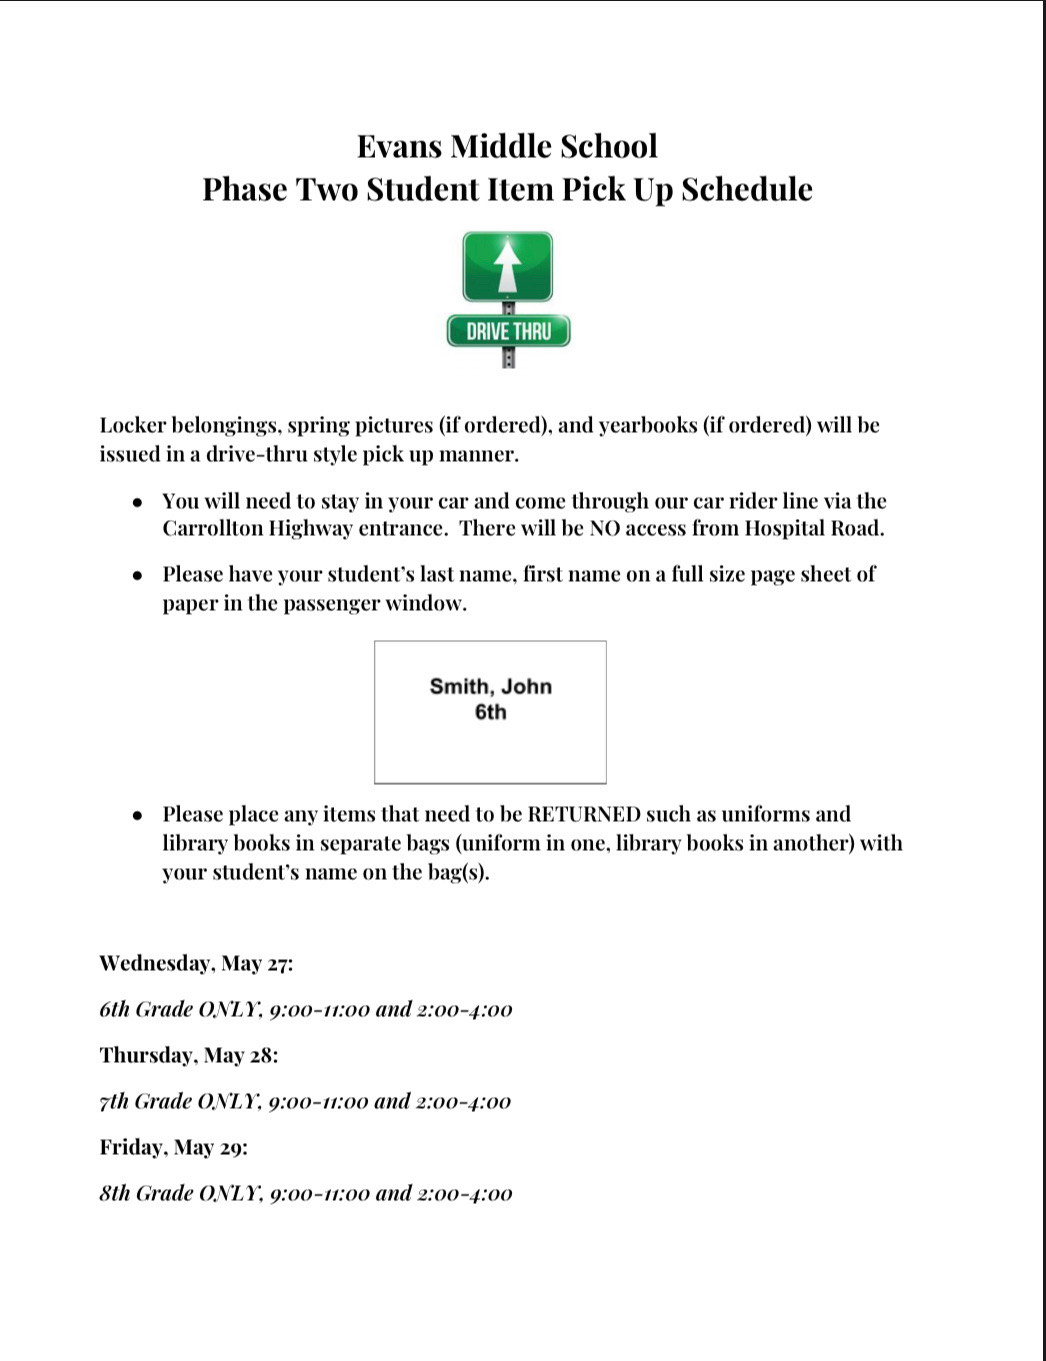 Phase 2: Student pickup by grade level